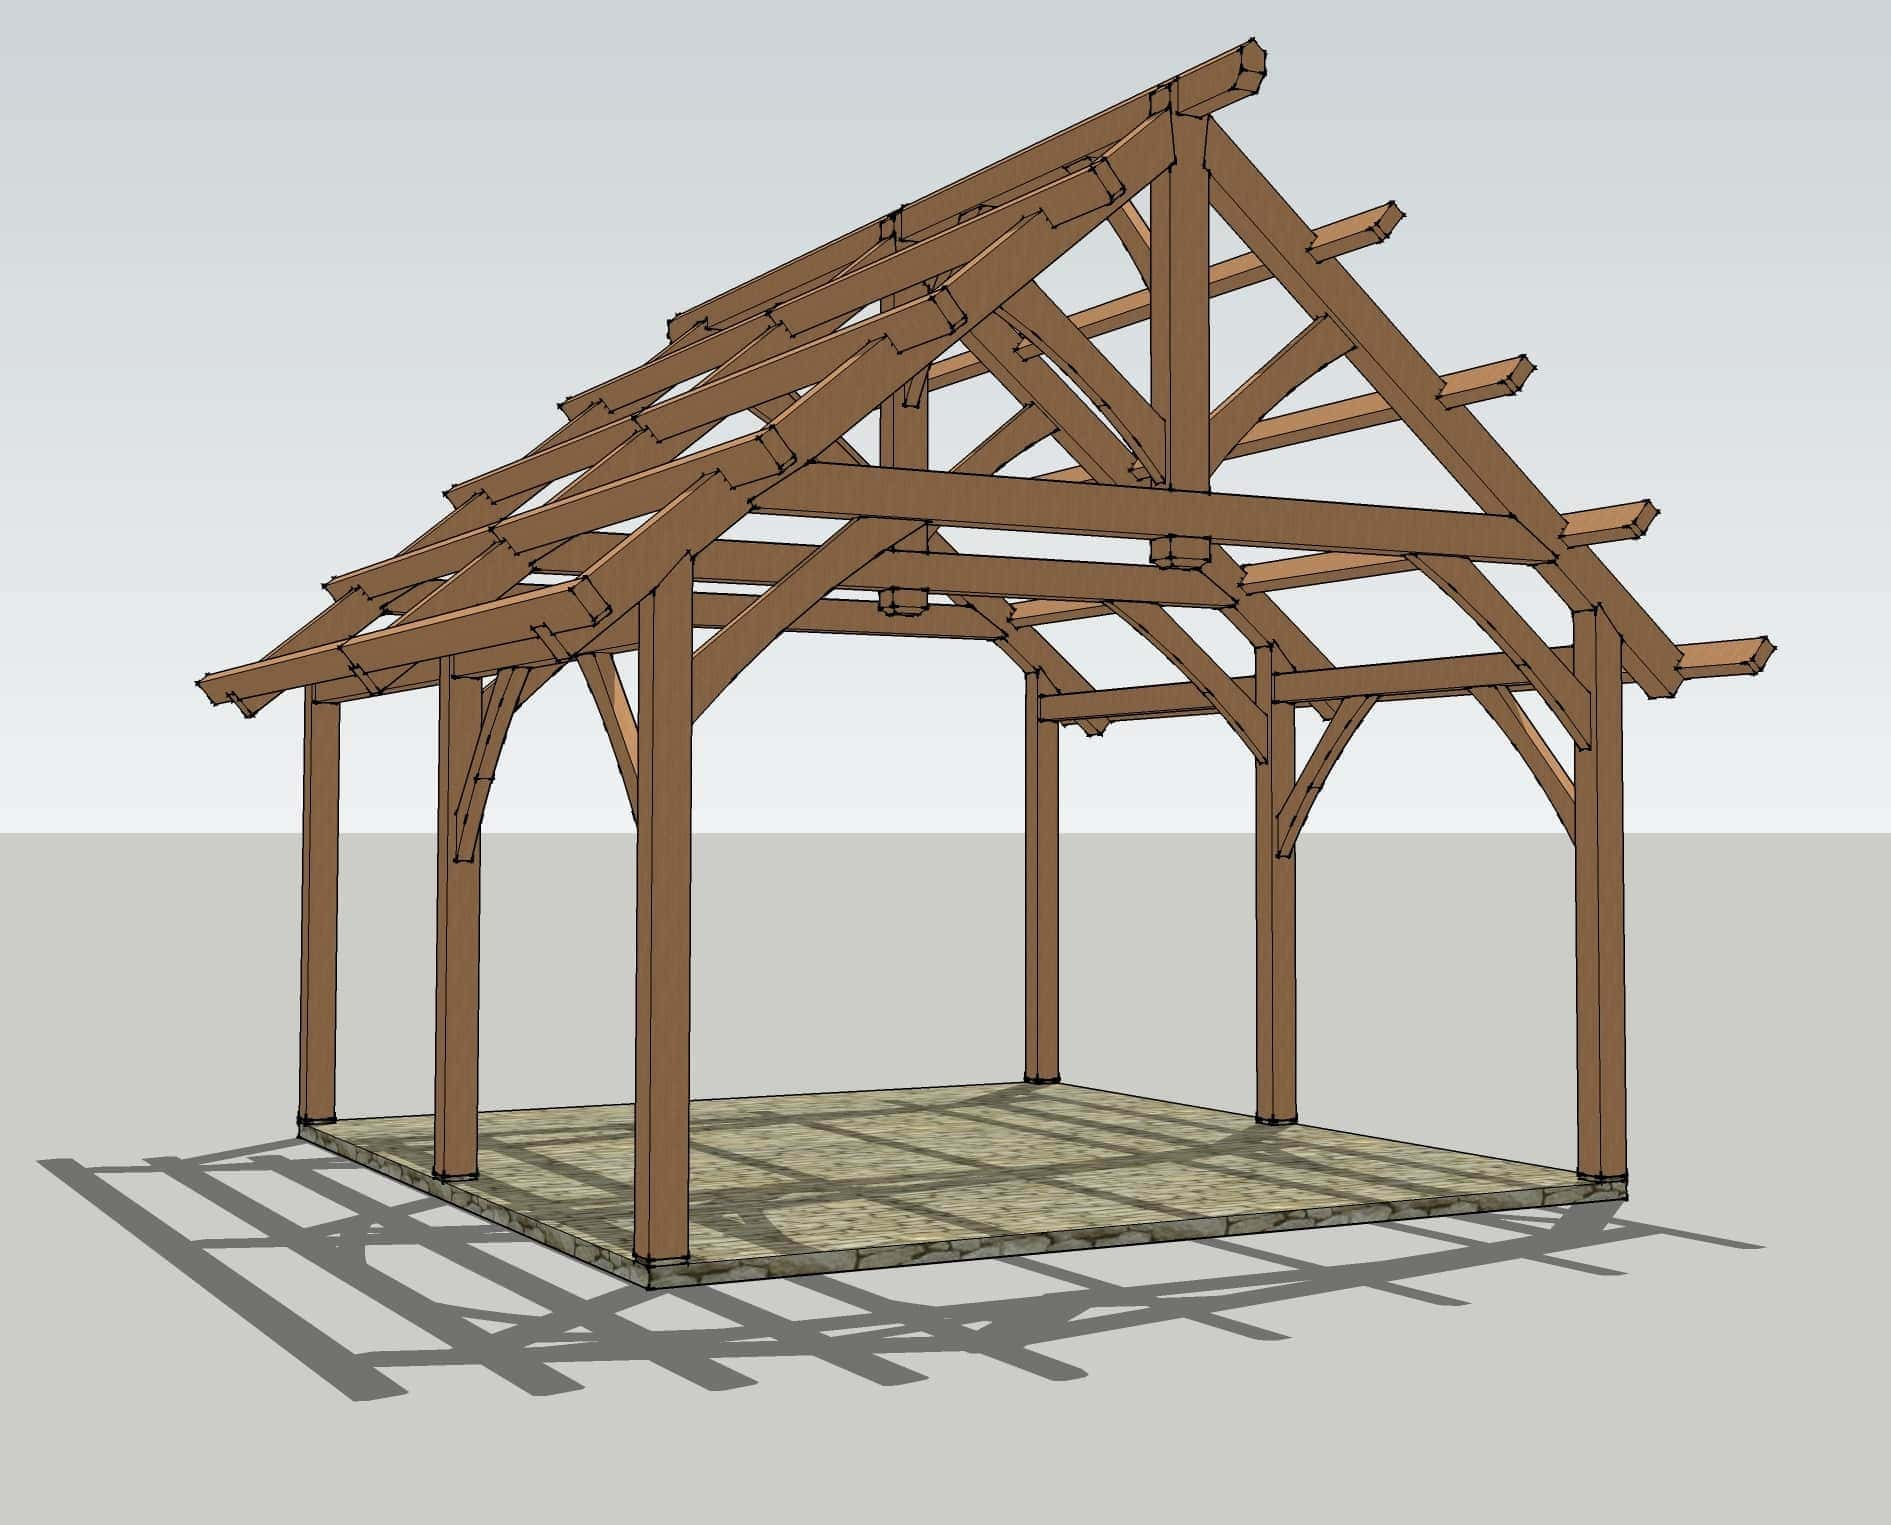 Garage Design Ideas Nz 19x22 Timbered Pavilion Timber Frame Hq